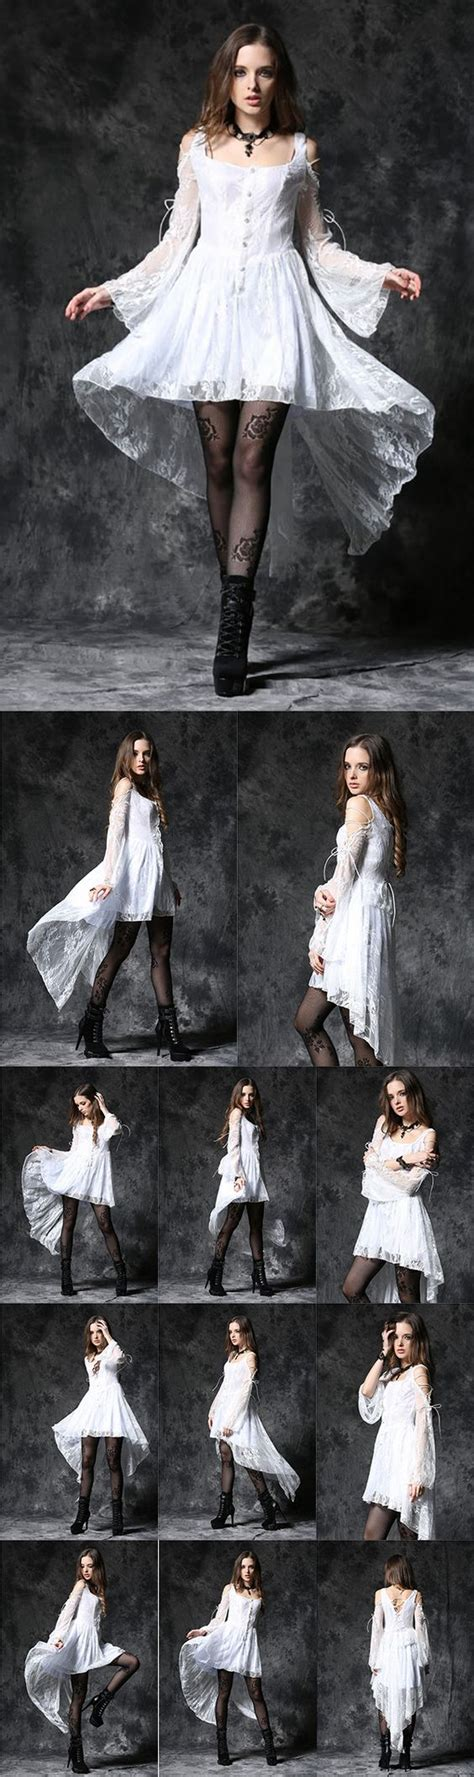 Dress Pendek Mini Dress Simply Stunning Style lace at the top and on